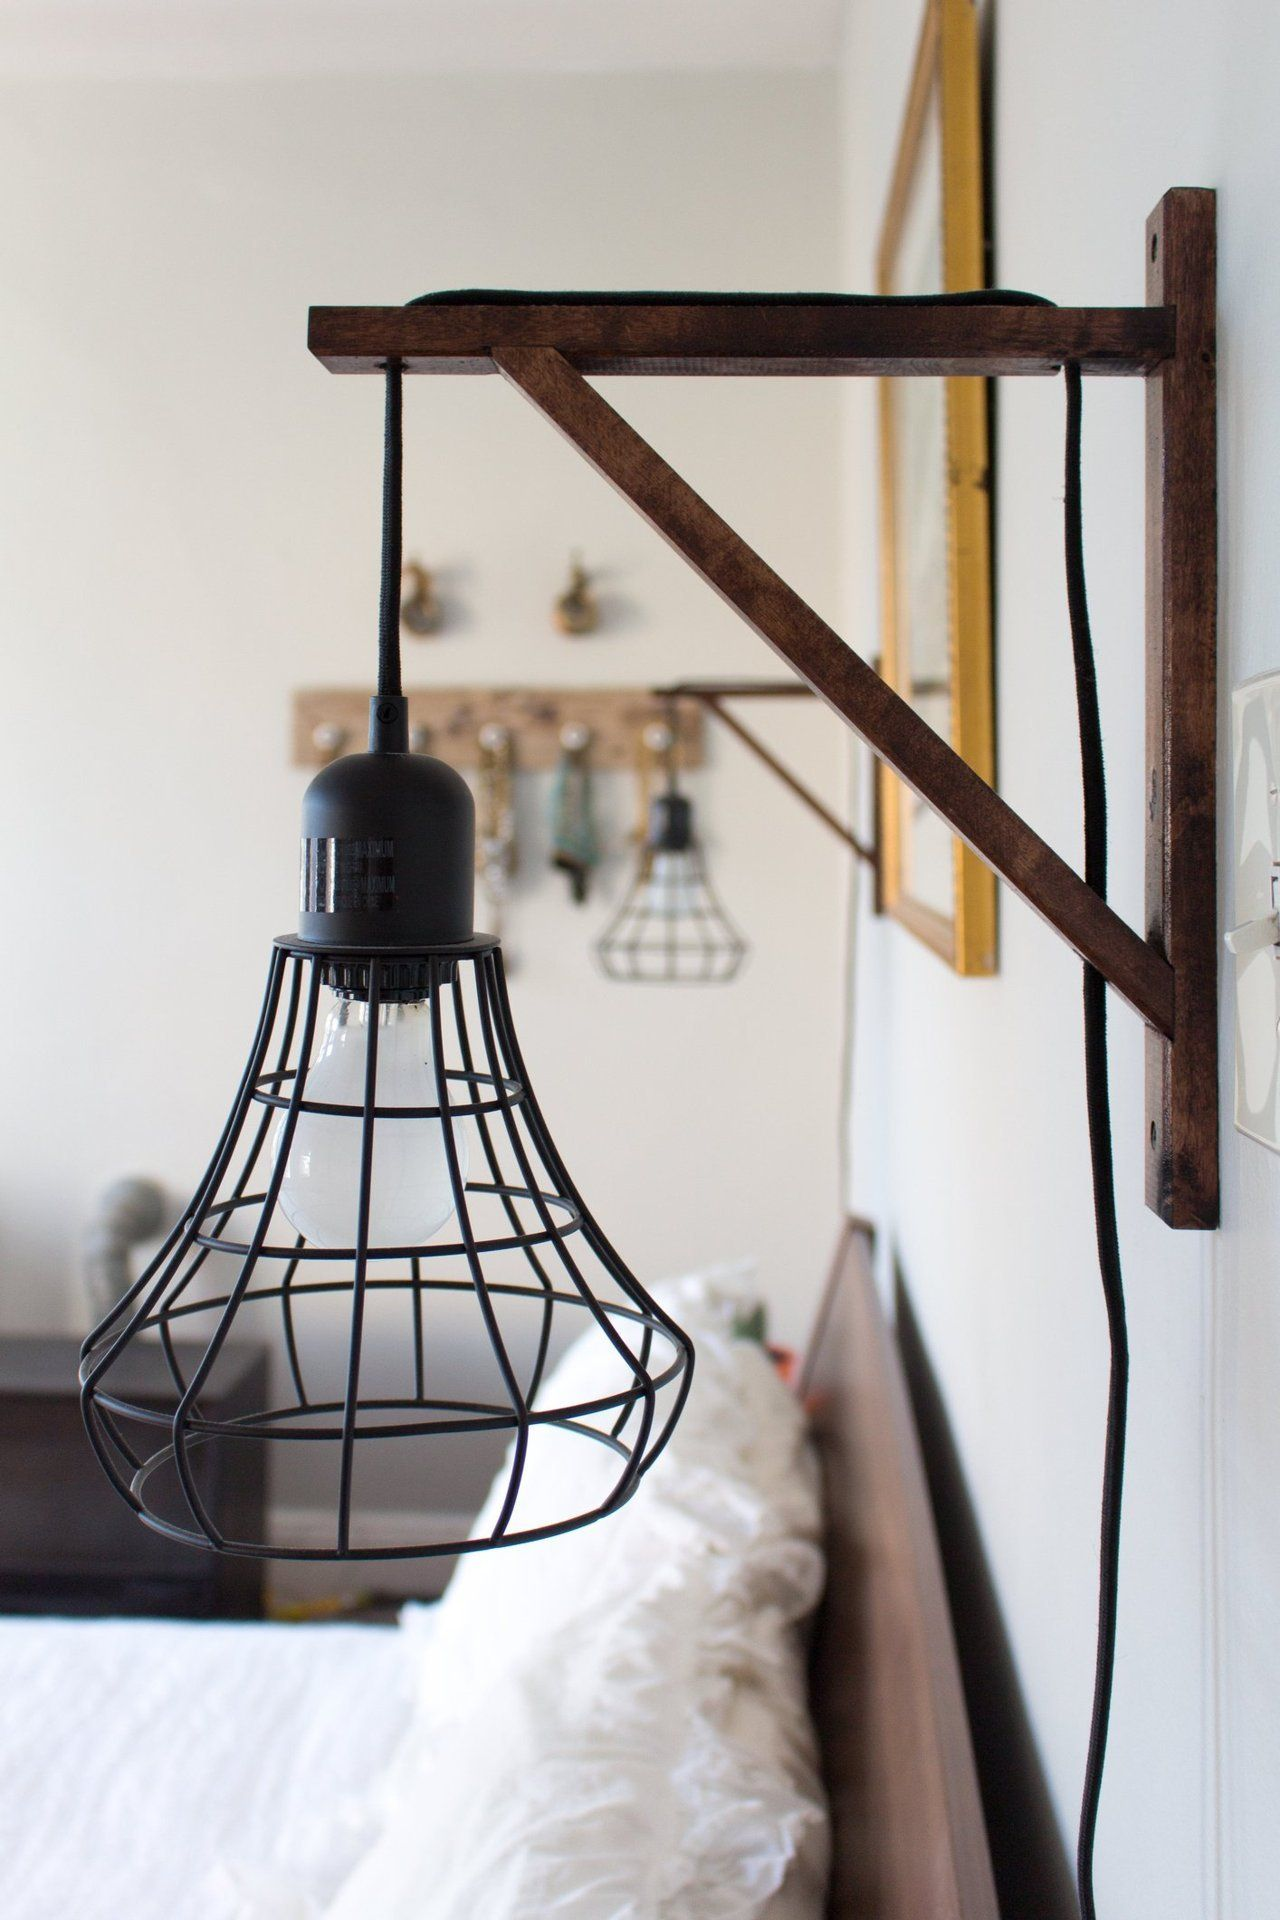 small resolution of ikea pendant light wired through wooden support taylor alana s carefully crafted hoboken apartment